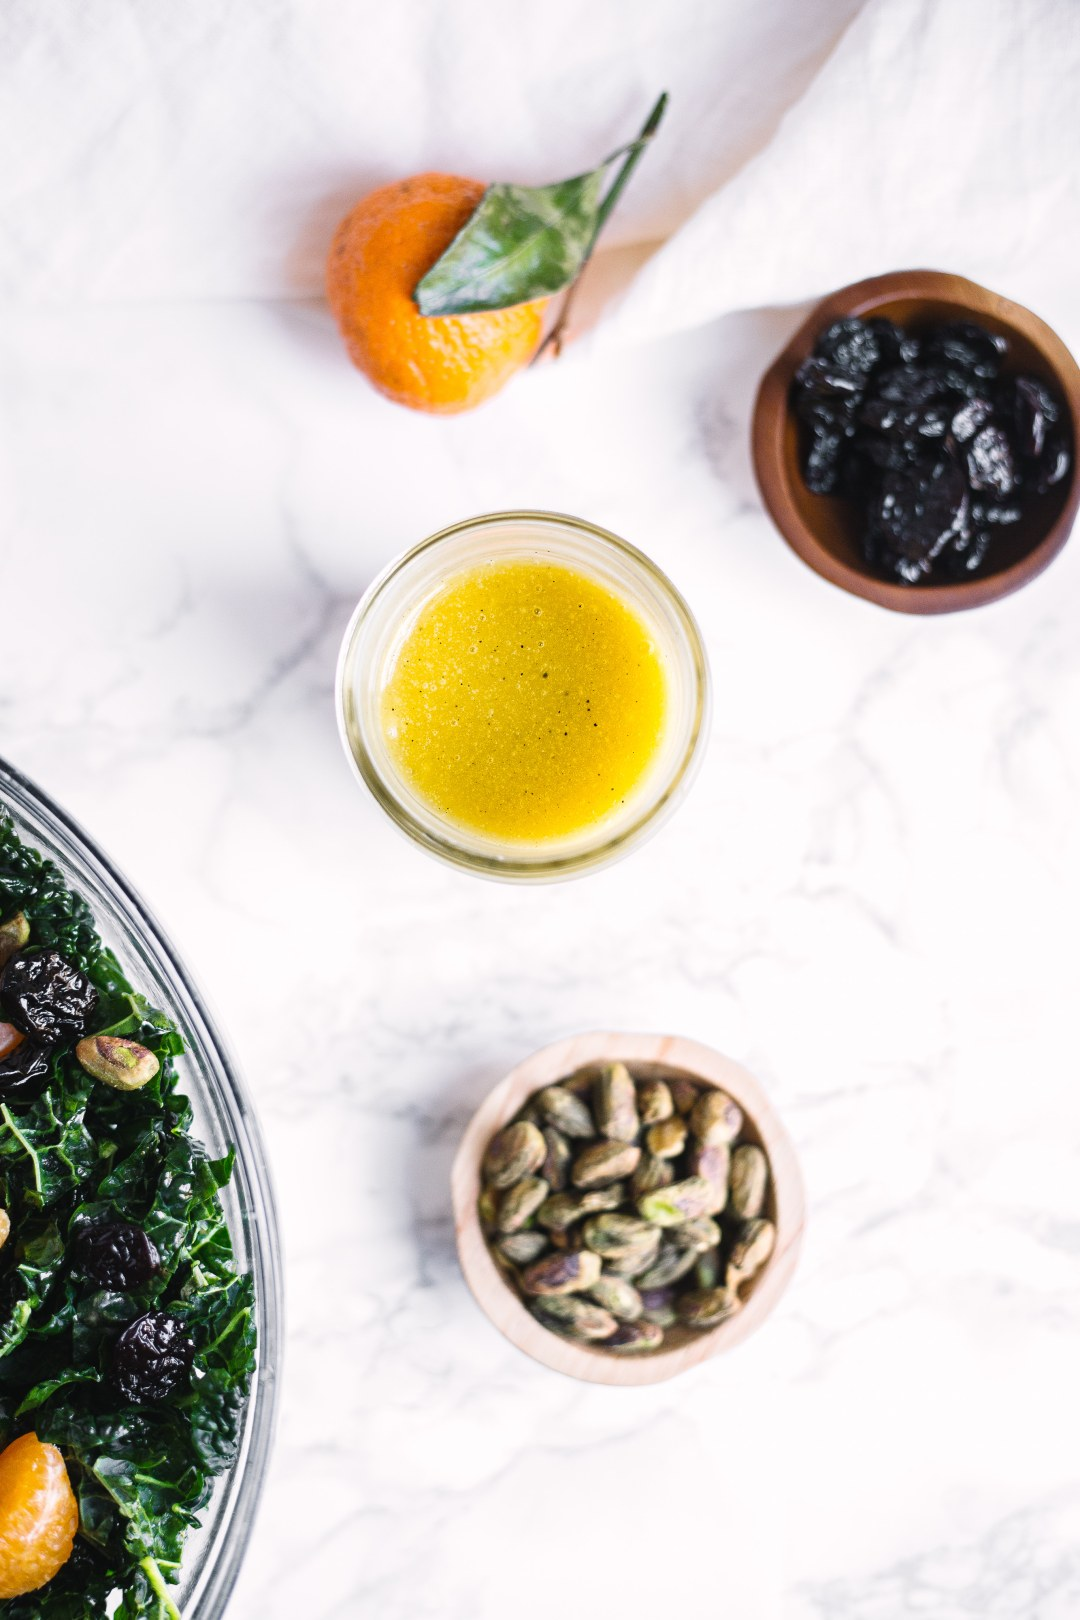 great kale salad recipe for kale newbies